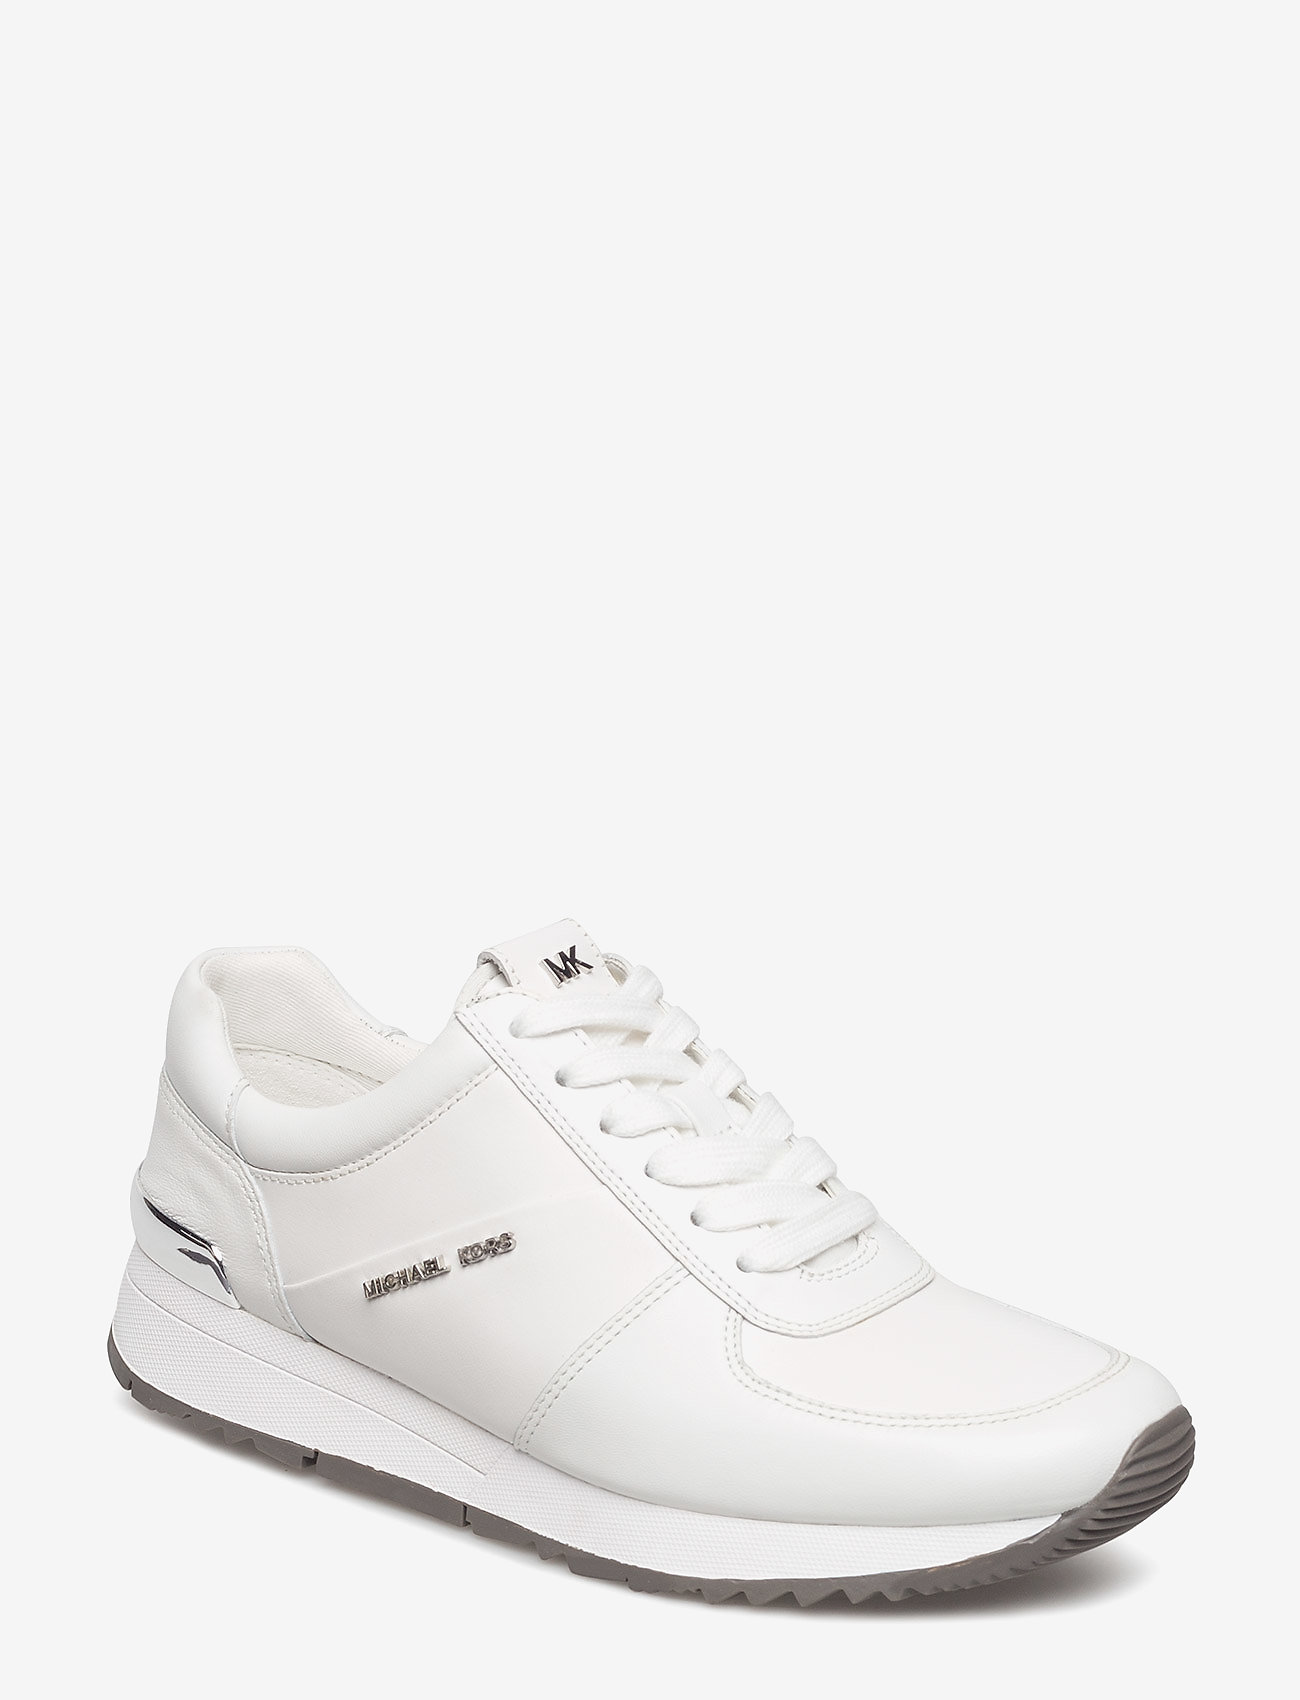 Michael Kors - ALLIE TRAINER - lage sneakers - optic white - 0